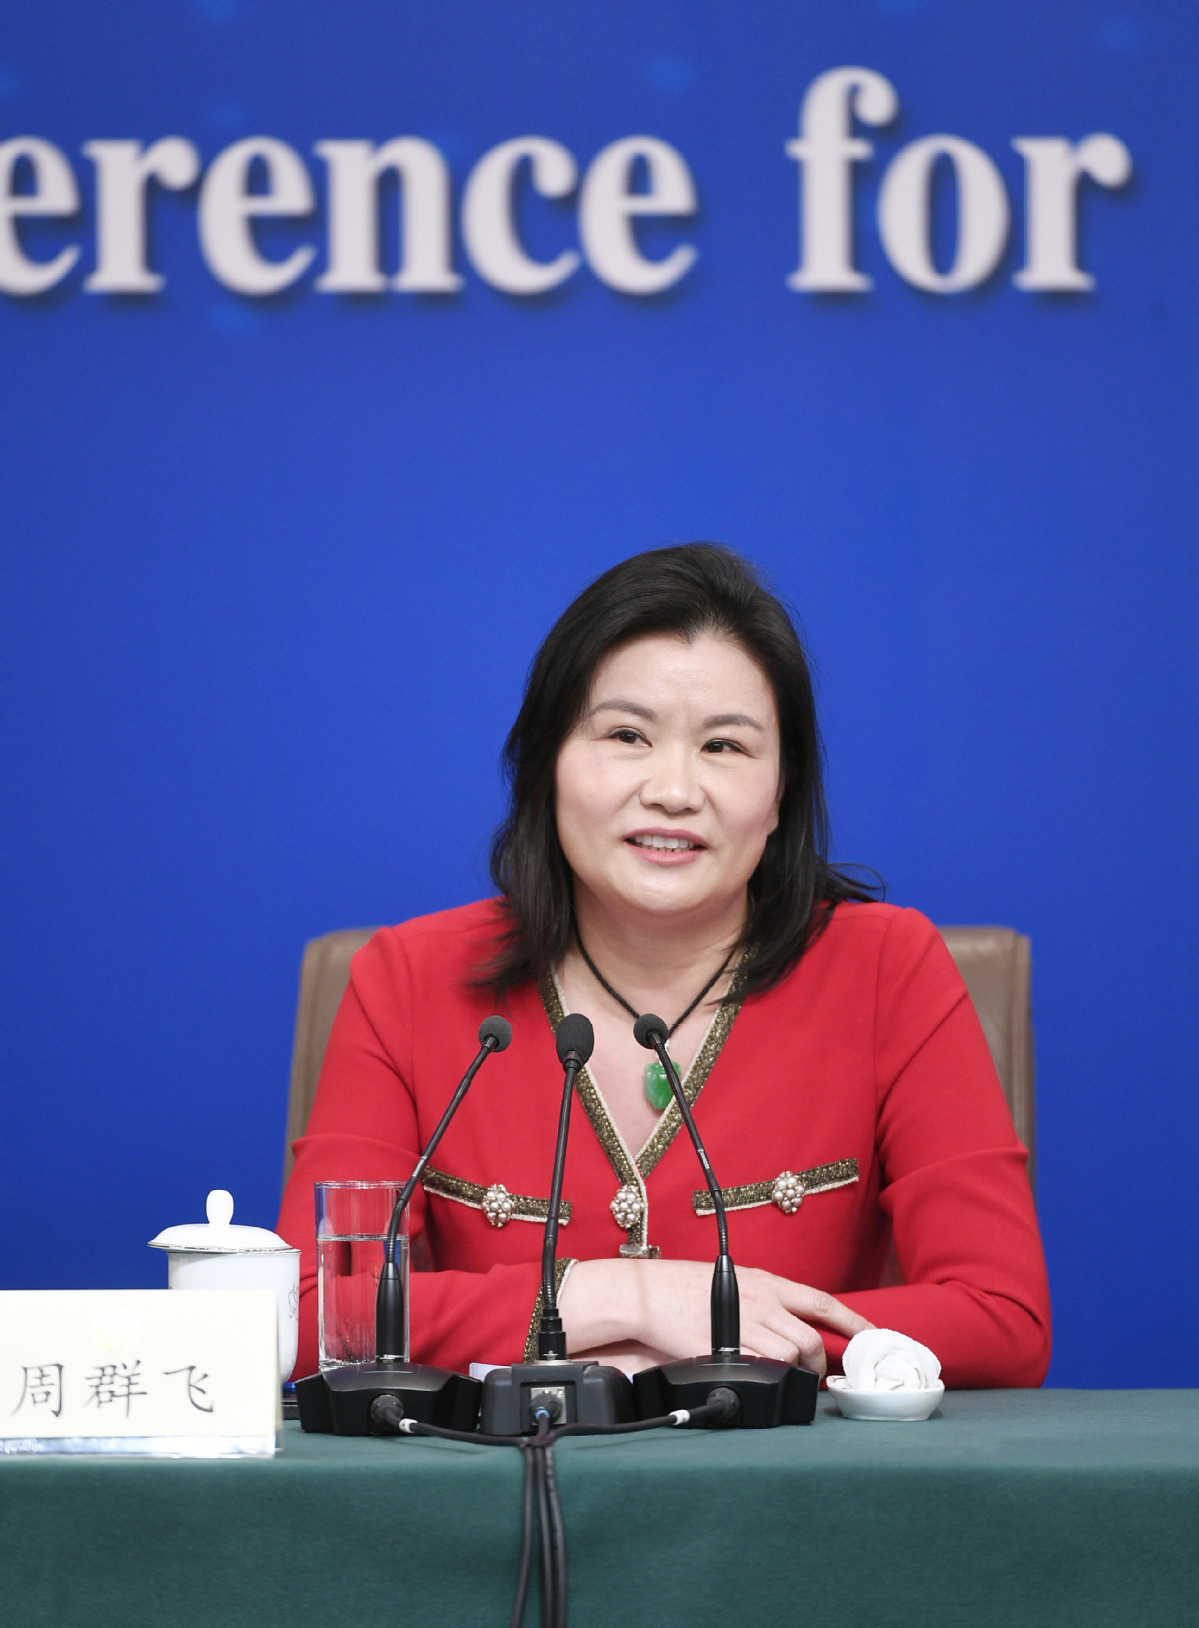 Top 10 richest self-made women in the world - Chinadaily.com.cn